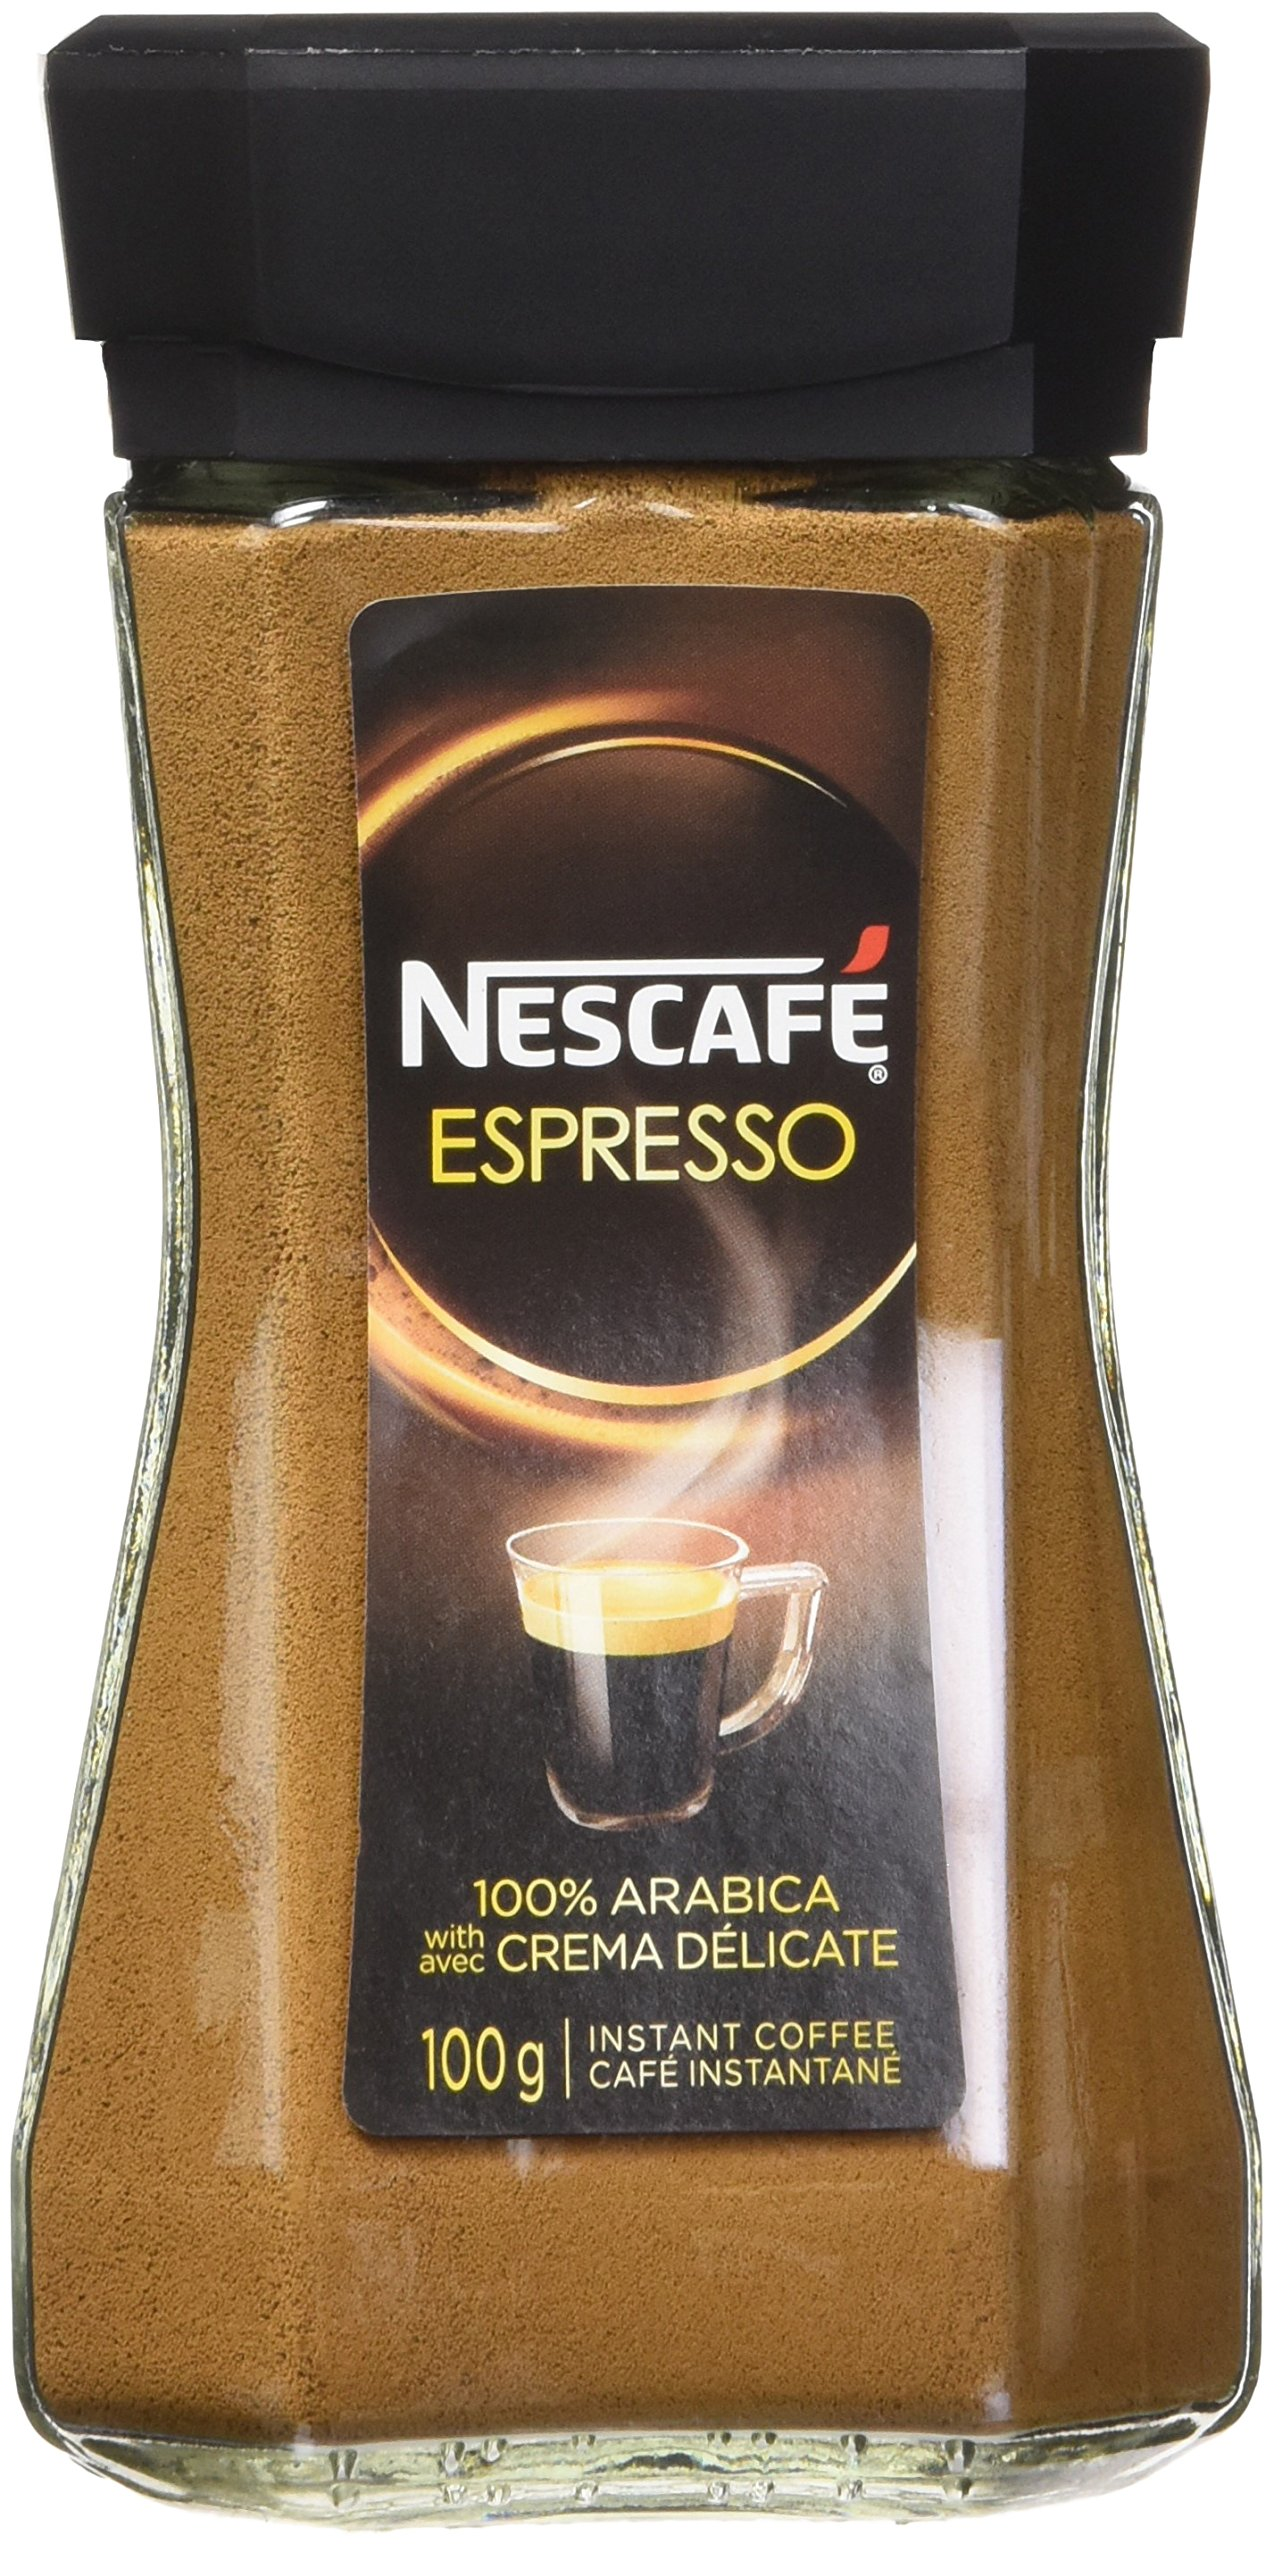 Amazon.com : Nescafe Espresso Instant Coffee 3.5oz/100g ...